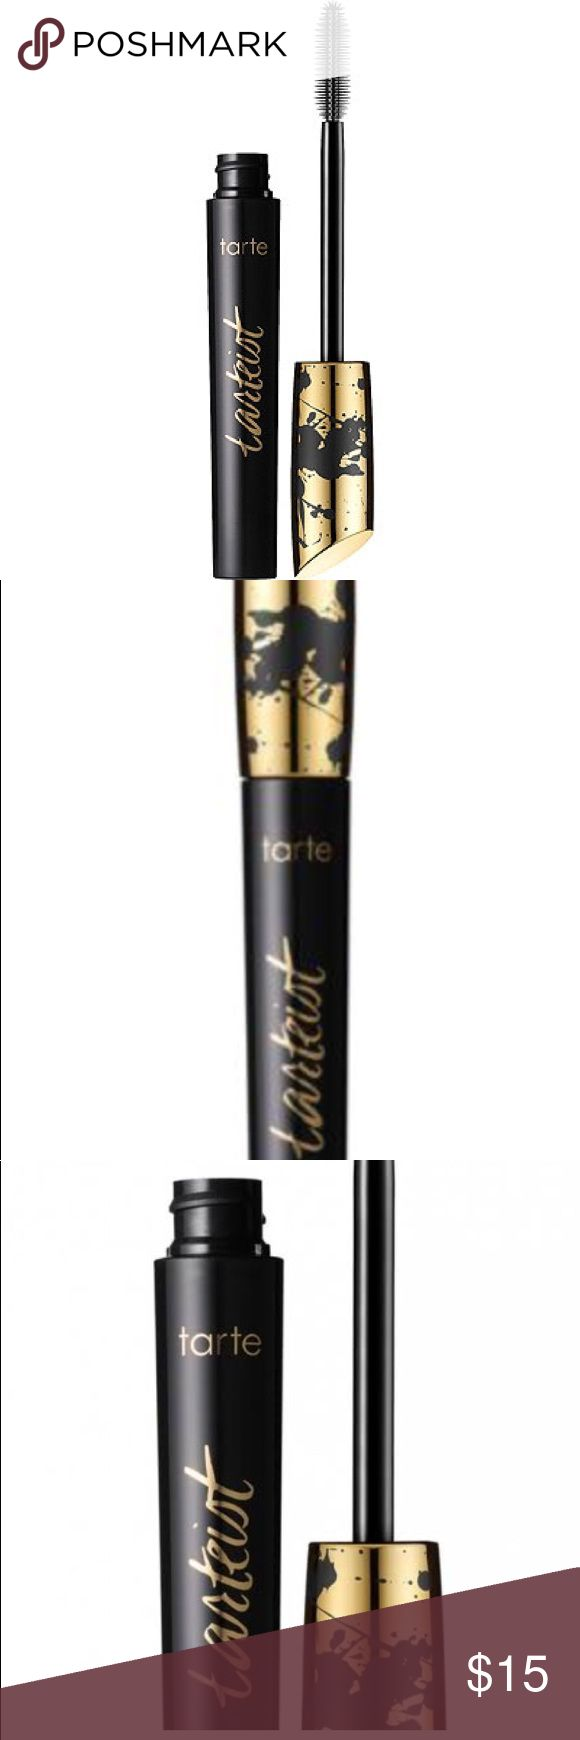 Tarte Tarteist Black Mascara Jet-black lengthening mascara for 2700% more lash volume.  Paint on dramatic lashes powered by good-for-you ingredients with this vegan Natural Artistry mascara. Infused with triple-black painted mineral pigments that strengthen and condition lashes while delivering bold black definition, you'll get flirty length and volume without any icky, bad ingredients. tarte Makeup Mascara